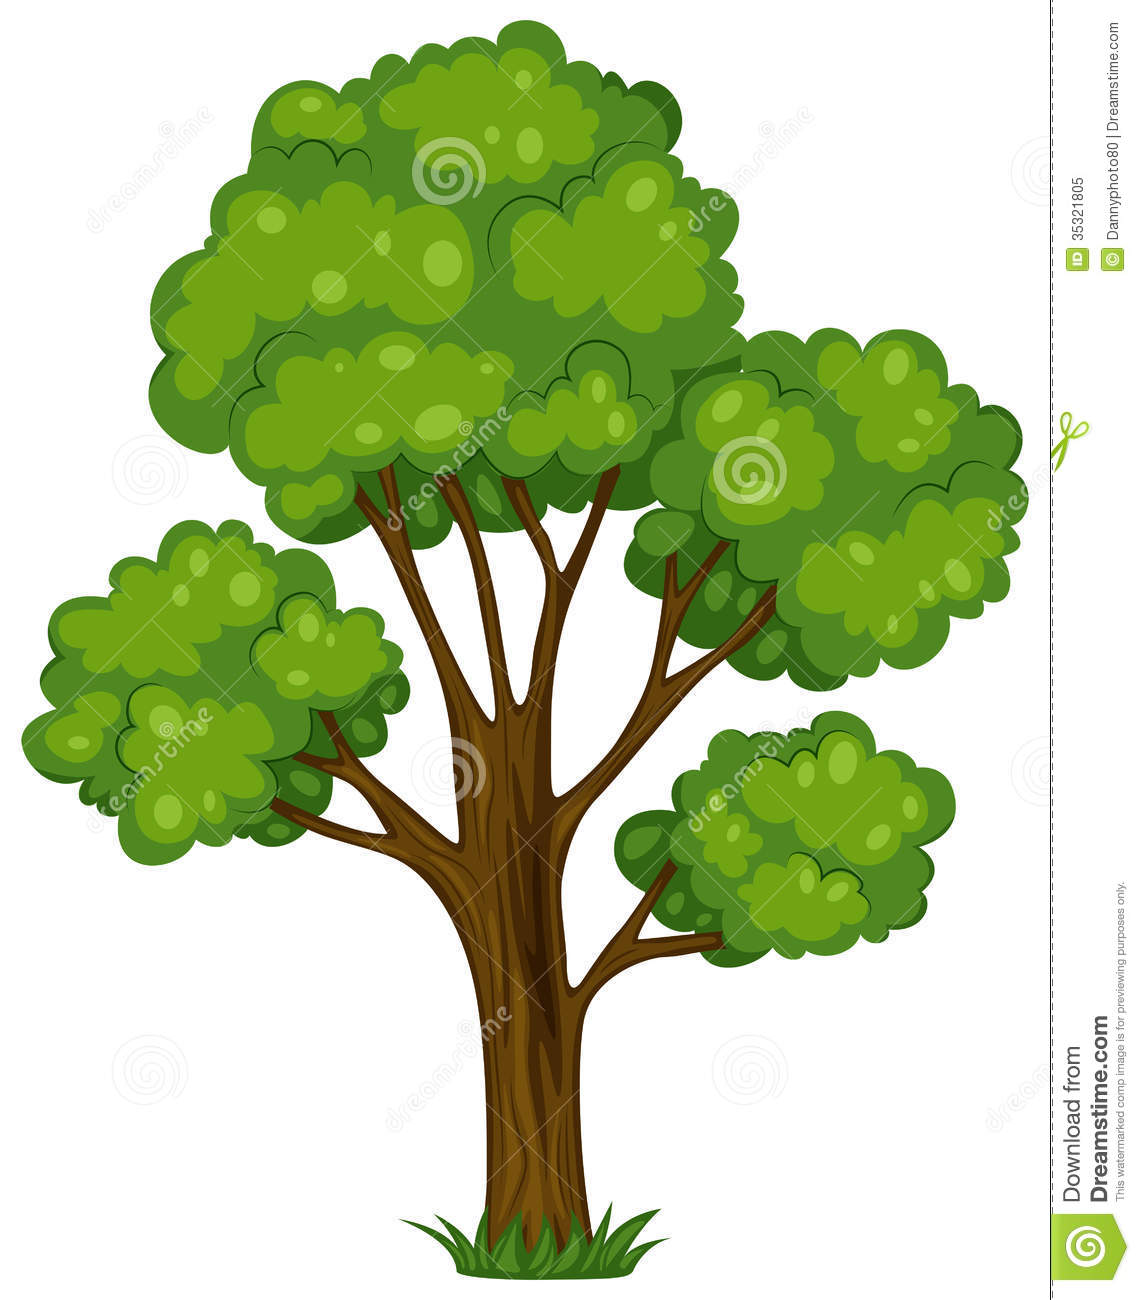 a tall tree royalty free stock photo image 35321805 pulling weeds clip art weed clip art art